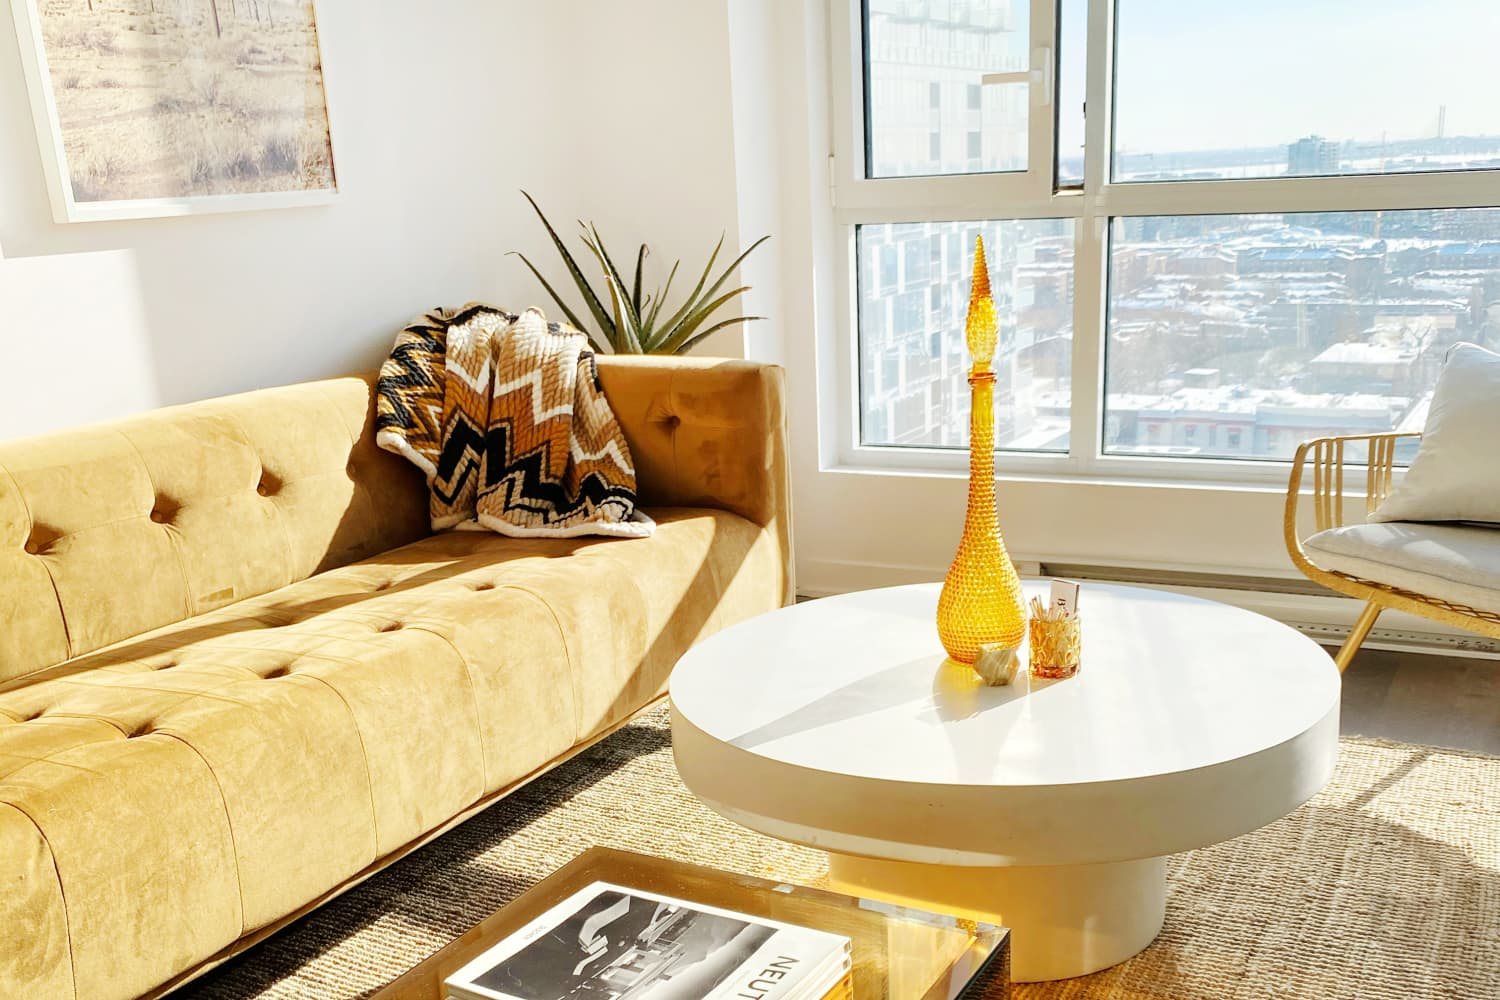 A Compact 560-Square-Foot Condo Is a Cool Mix of Vintage Pieces from the '60s and '70s